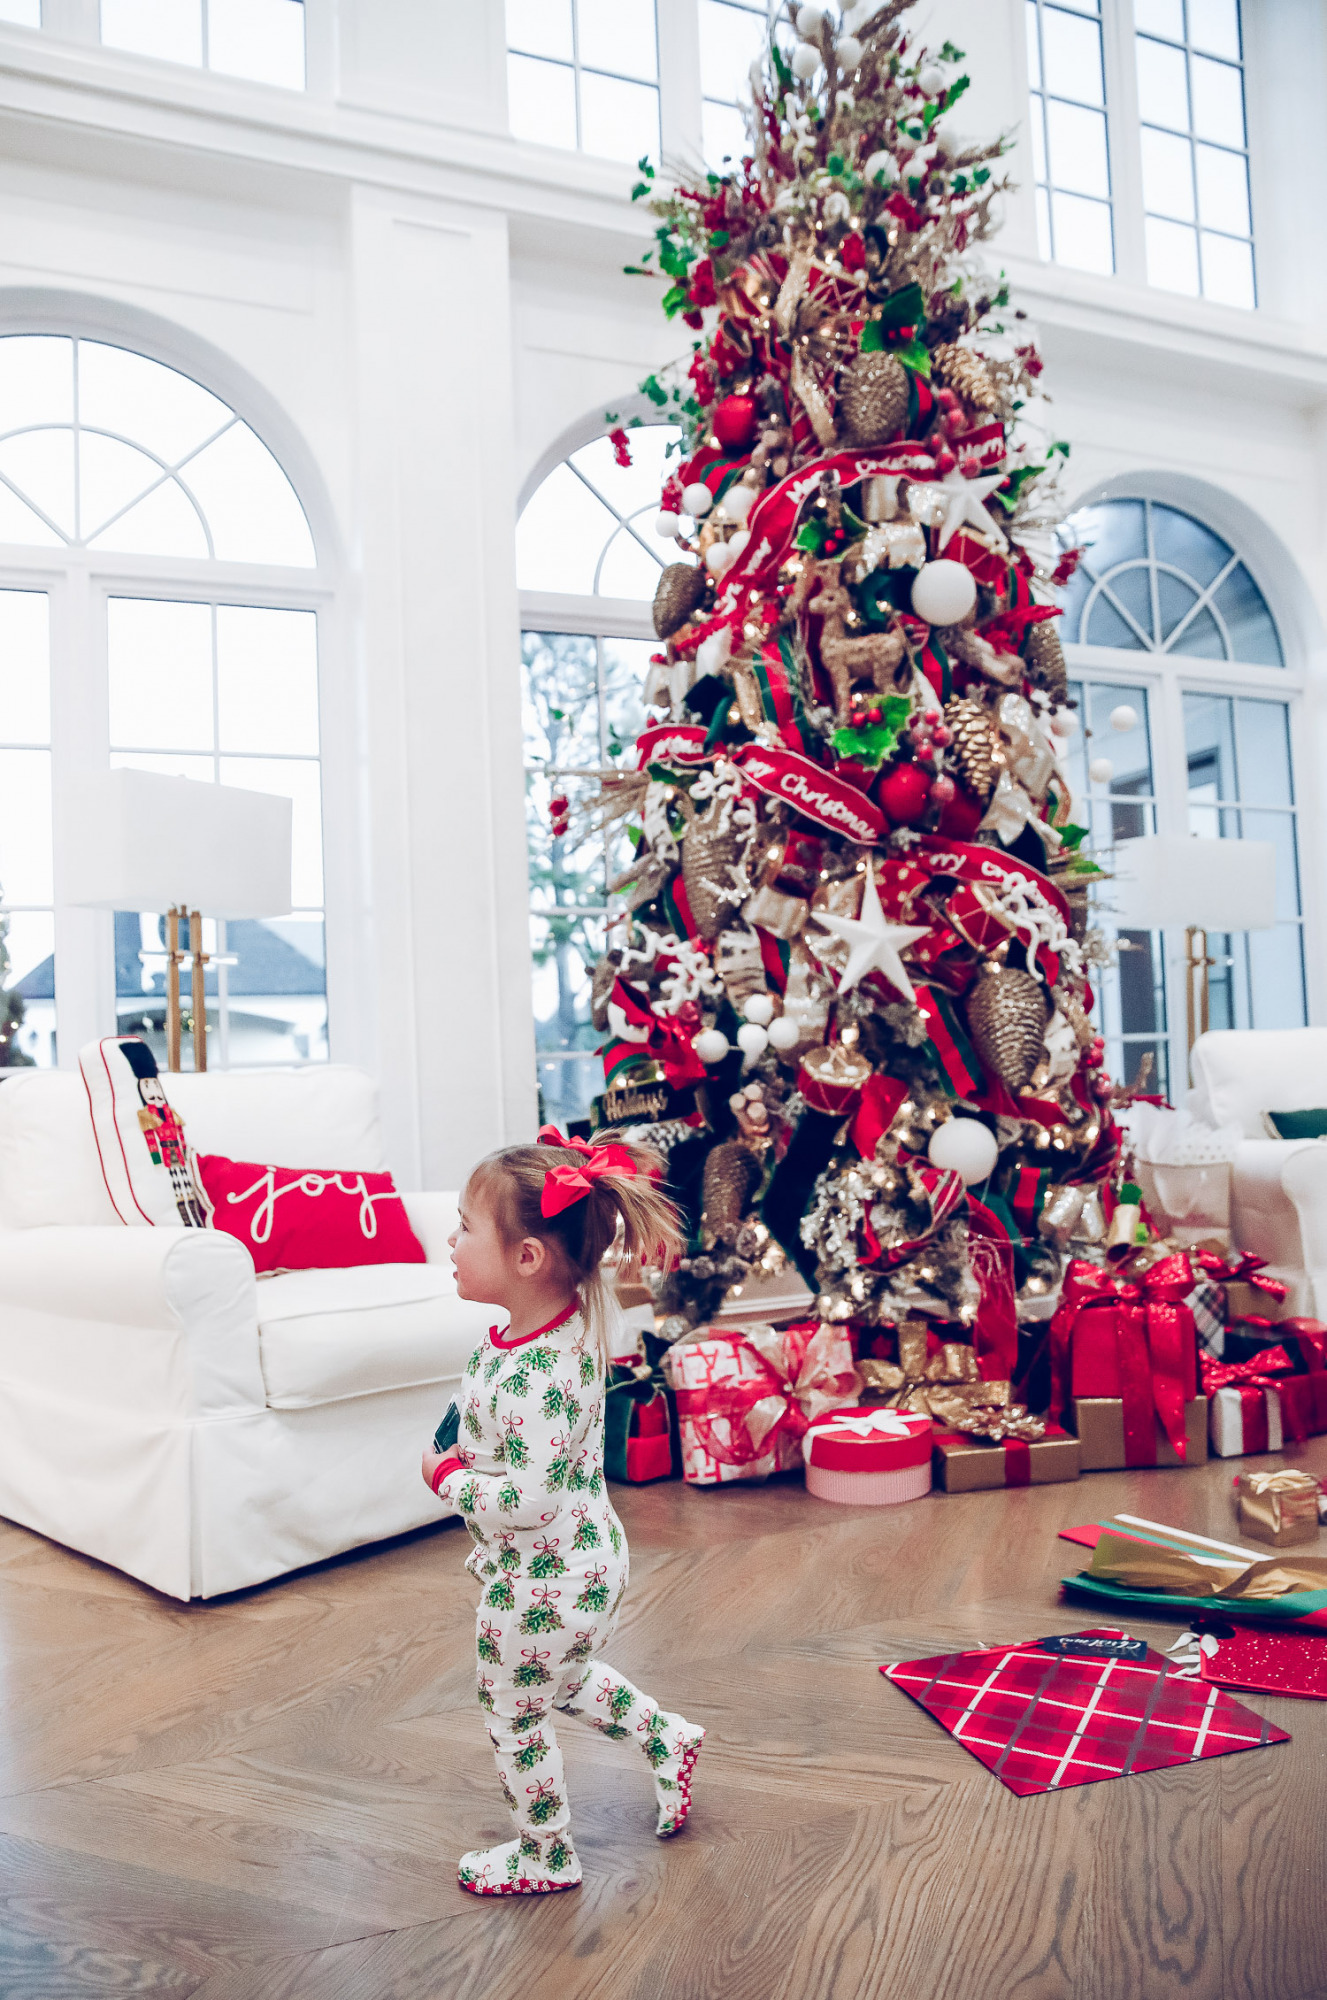 walmart gift wrap christmas 2020, shop hello holidays christmas tree, magnetic me PJs, emily ann gemma-10 |Gift Wrapping Ideas by popular US life and style blog, The Sweetest Thing: image of a little girl wearing Magnetic Me Christmas pjs while standing next to Christmas wrapping paper spread all over the floor in front of a Christmas tree with red, green and gold ornaments.